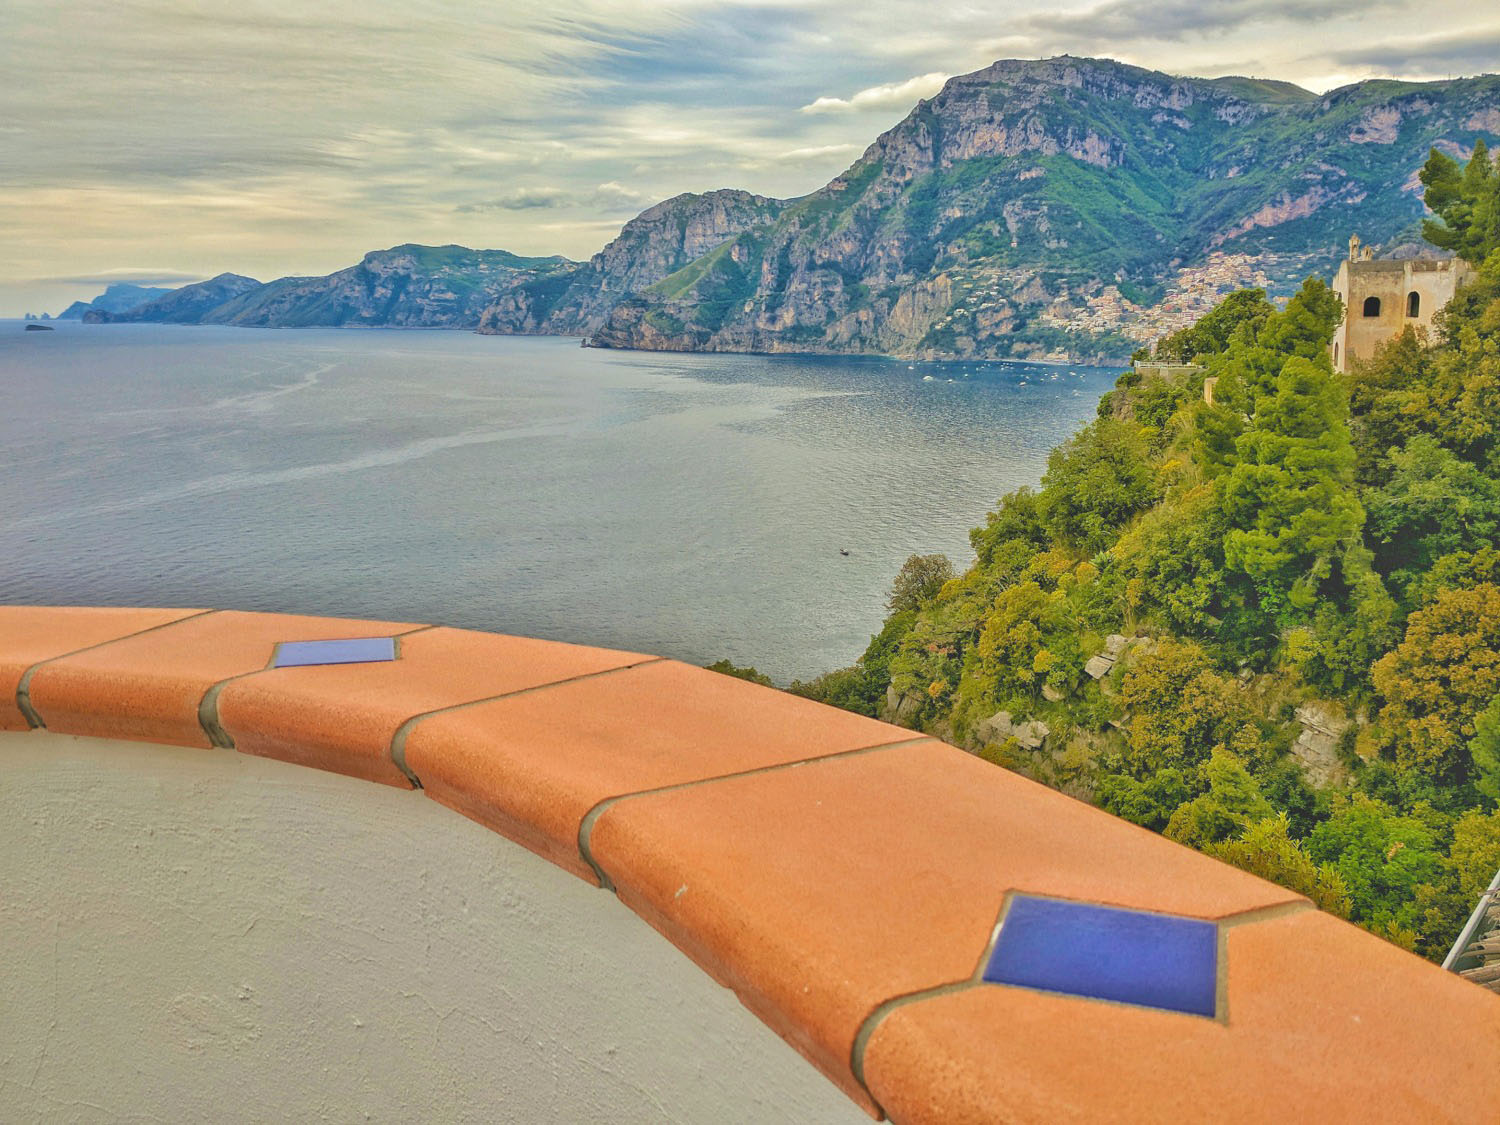 The Amalfi Coast - a view from a hotel terrace.